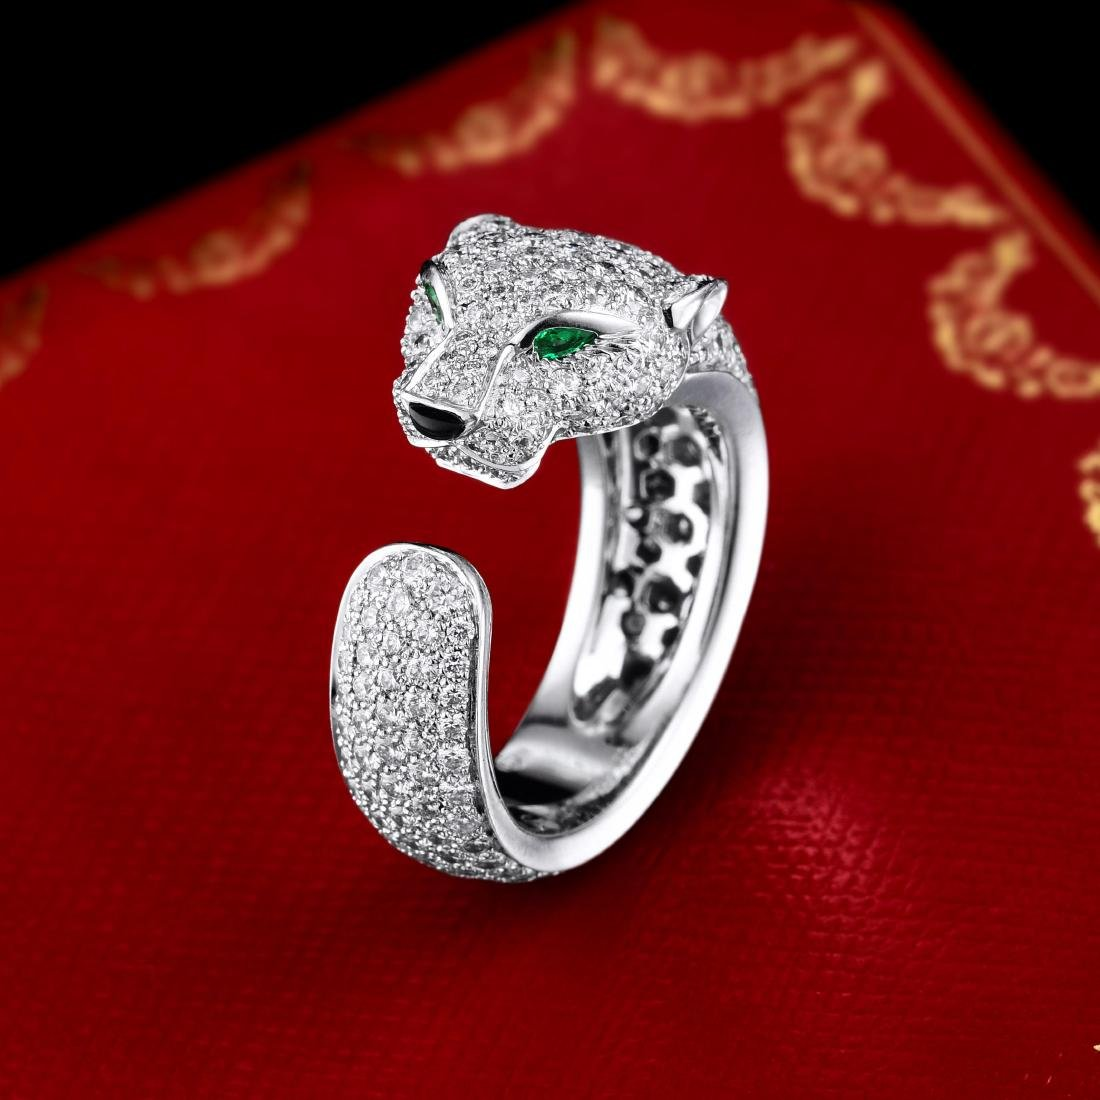 Cartier Panthere Diamond and Emerald Ring